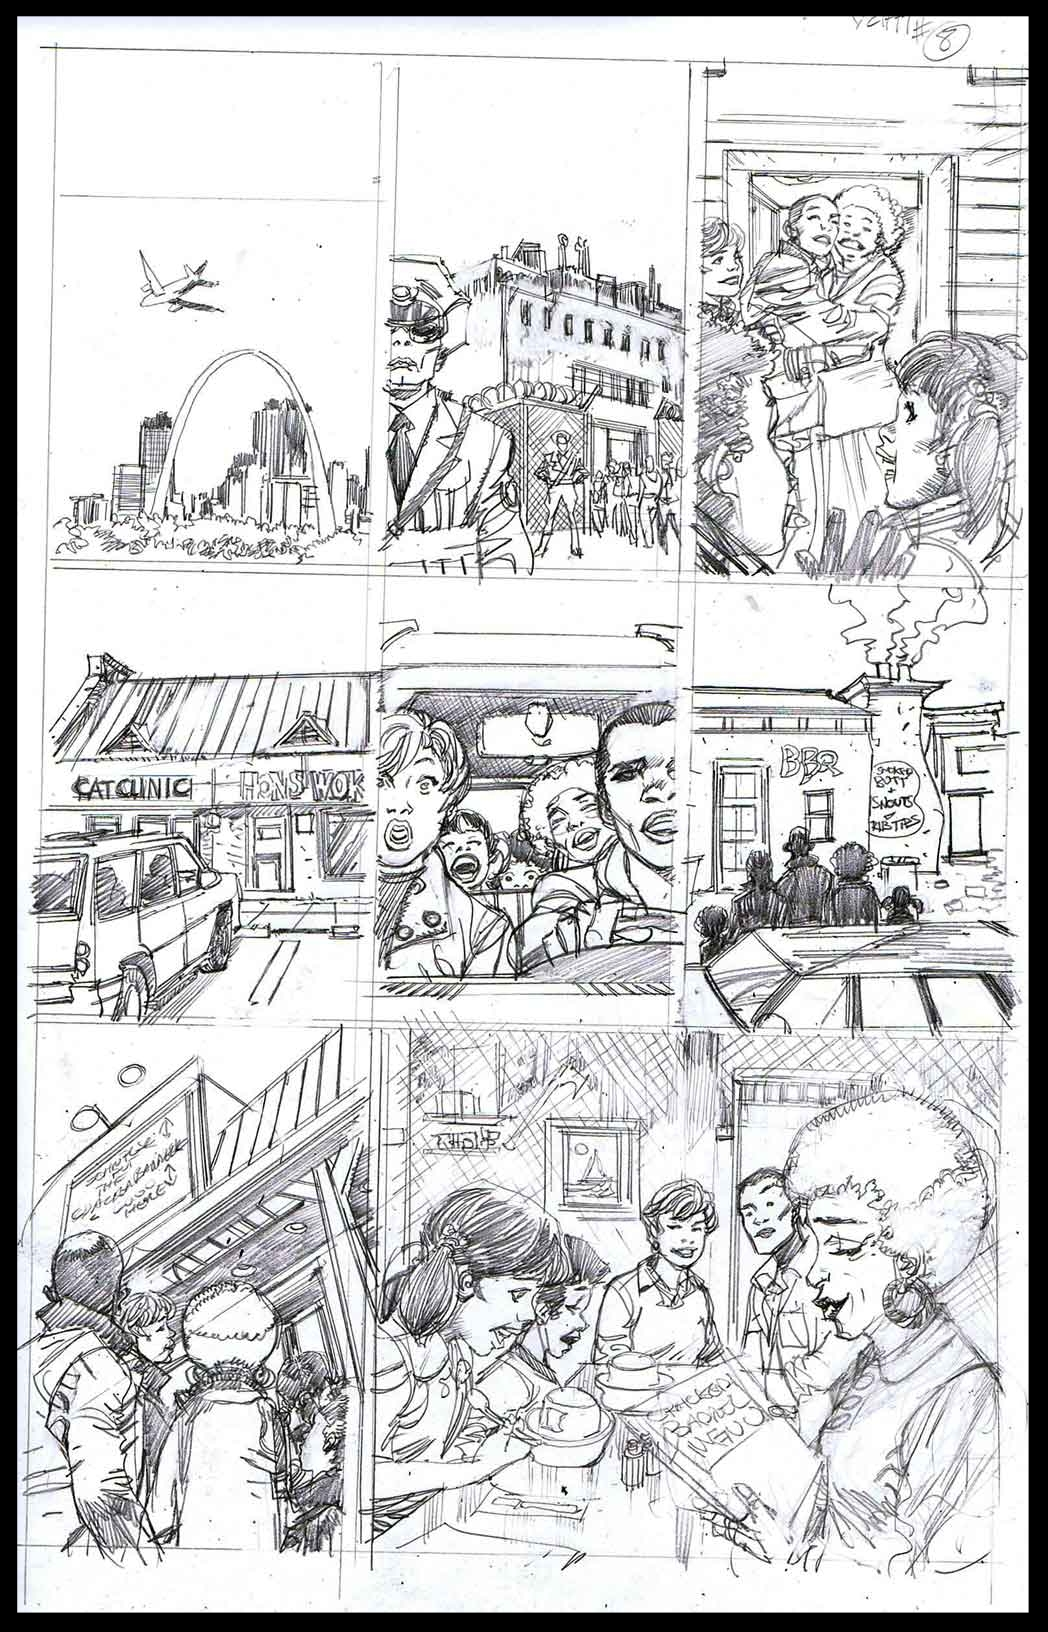 You Can't Handle The Truth #8 - Monthly Strip for Ebony - Pencils